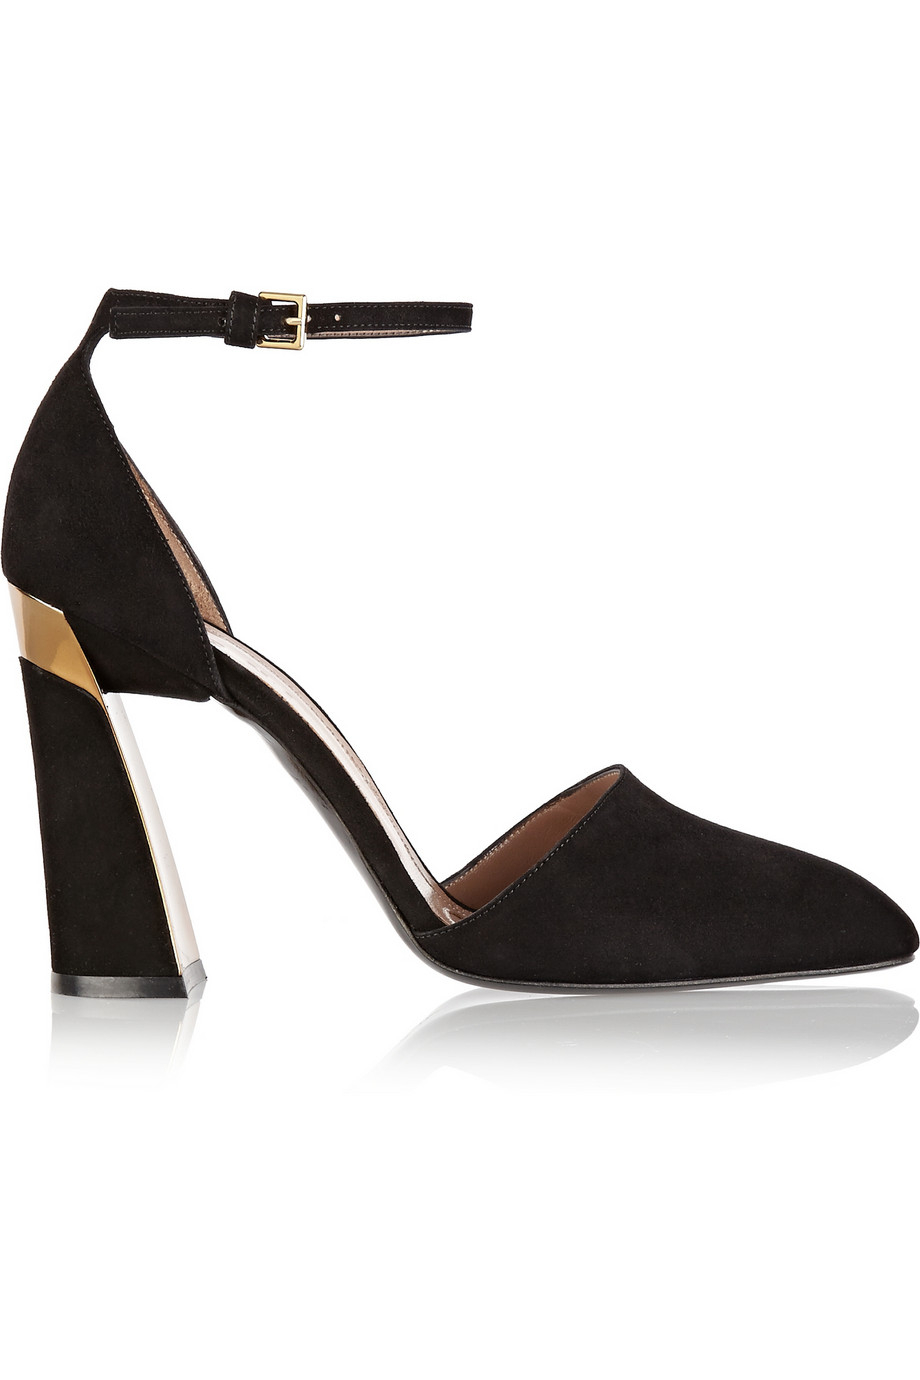 Marni Leather-Trimmed Platform Pumps outlet 100% authentic exclusive cheap price 12wVGAmN